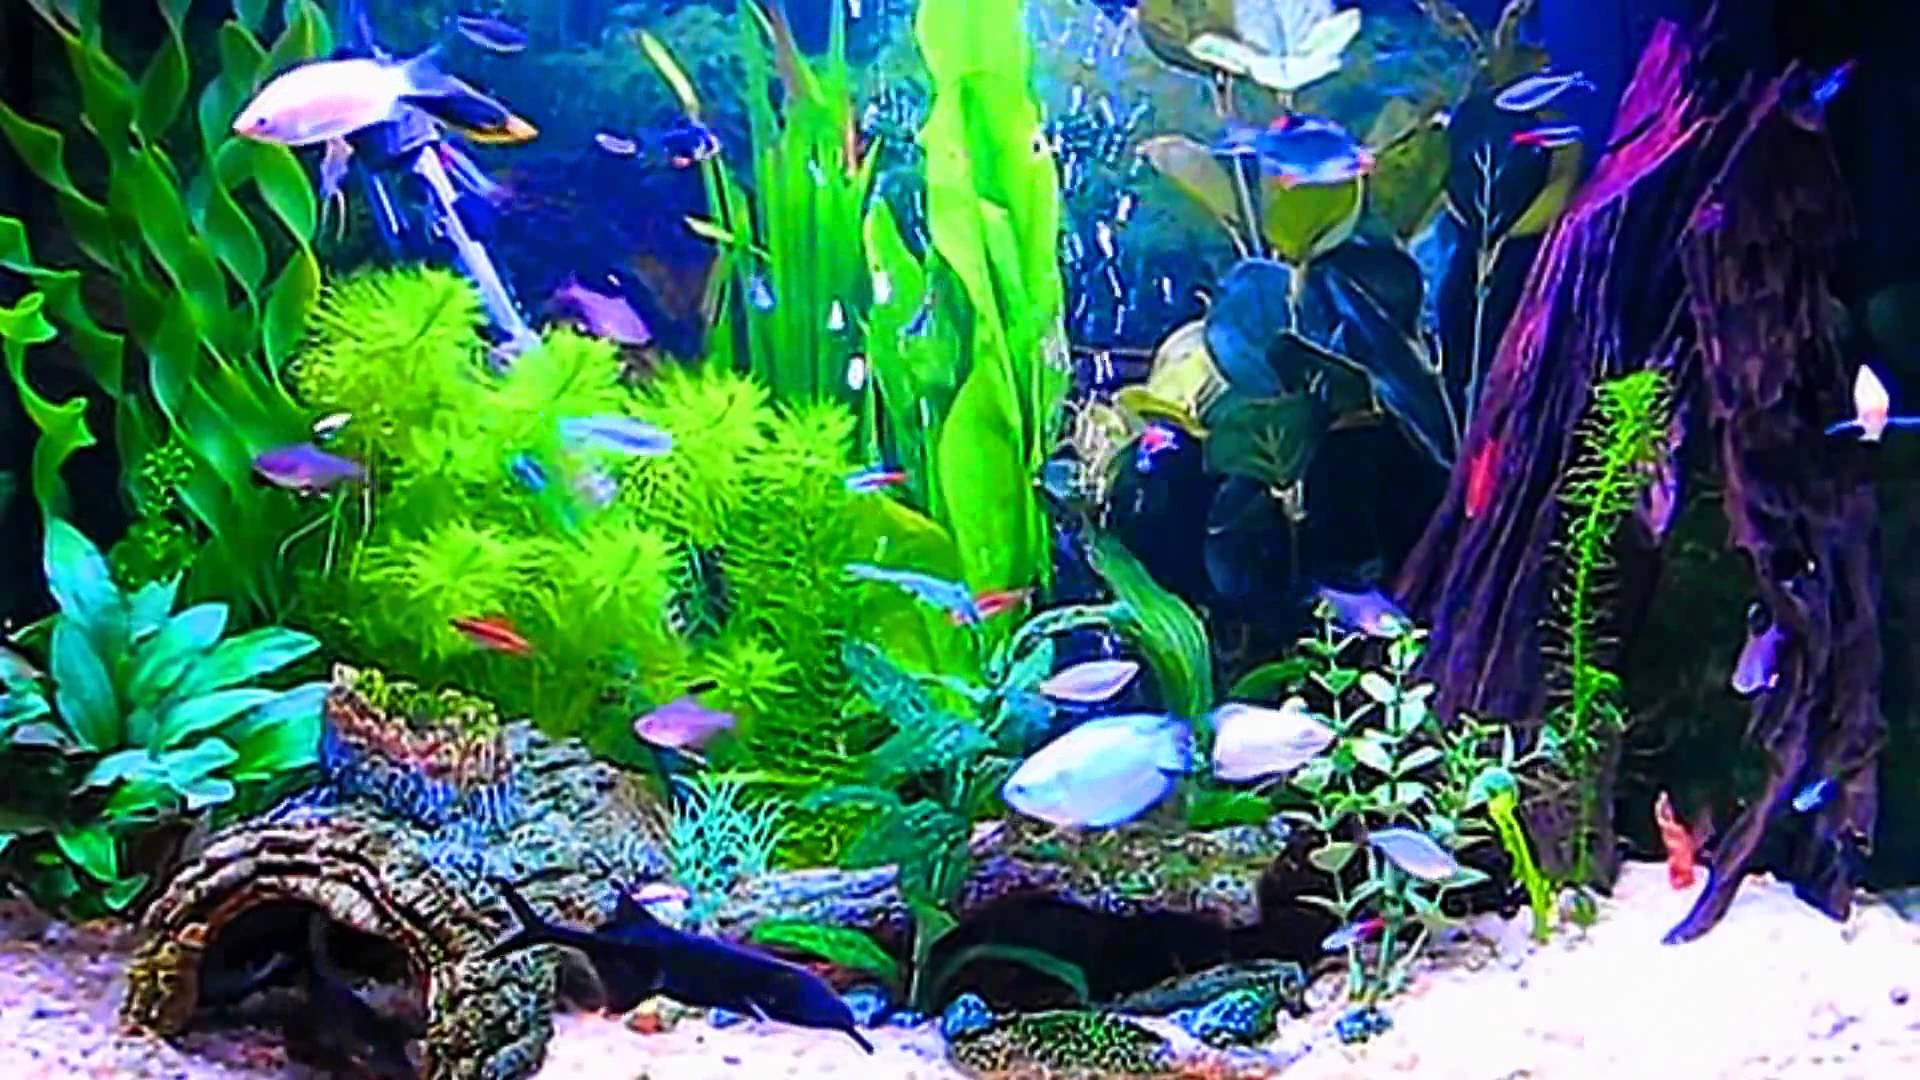 aquarium live wallpaper windows 10 wallpapersafari. Black Bedroom Furniture Sets. Home Design Ideas